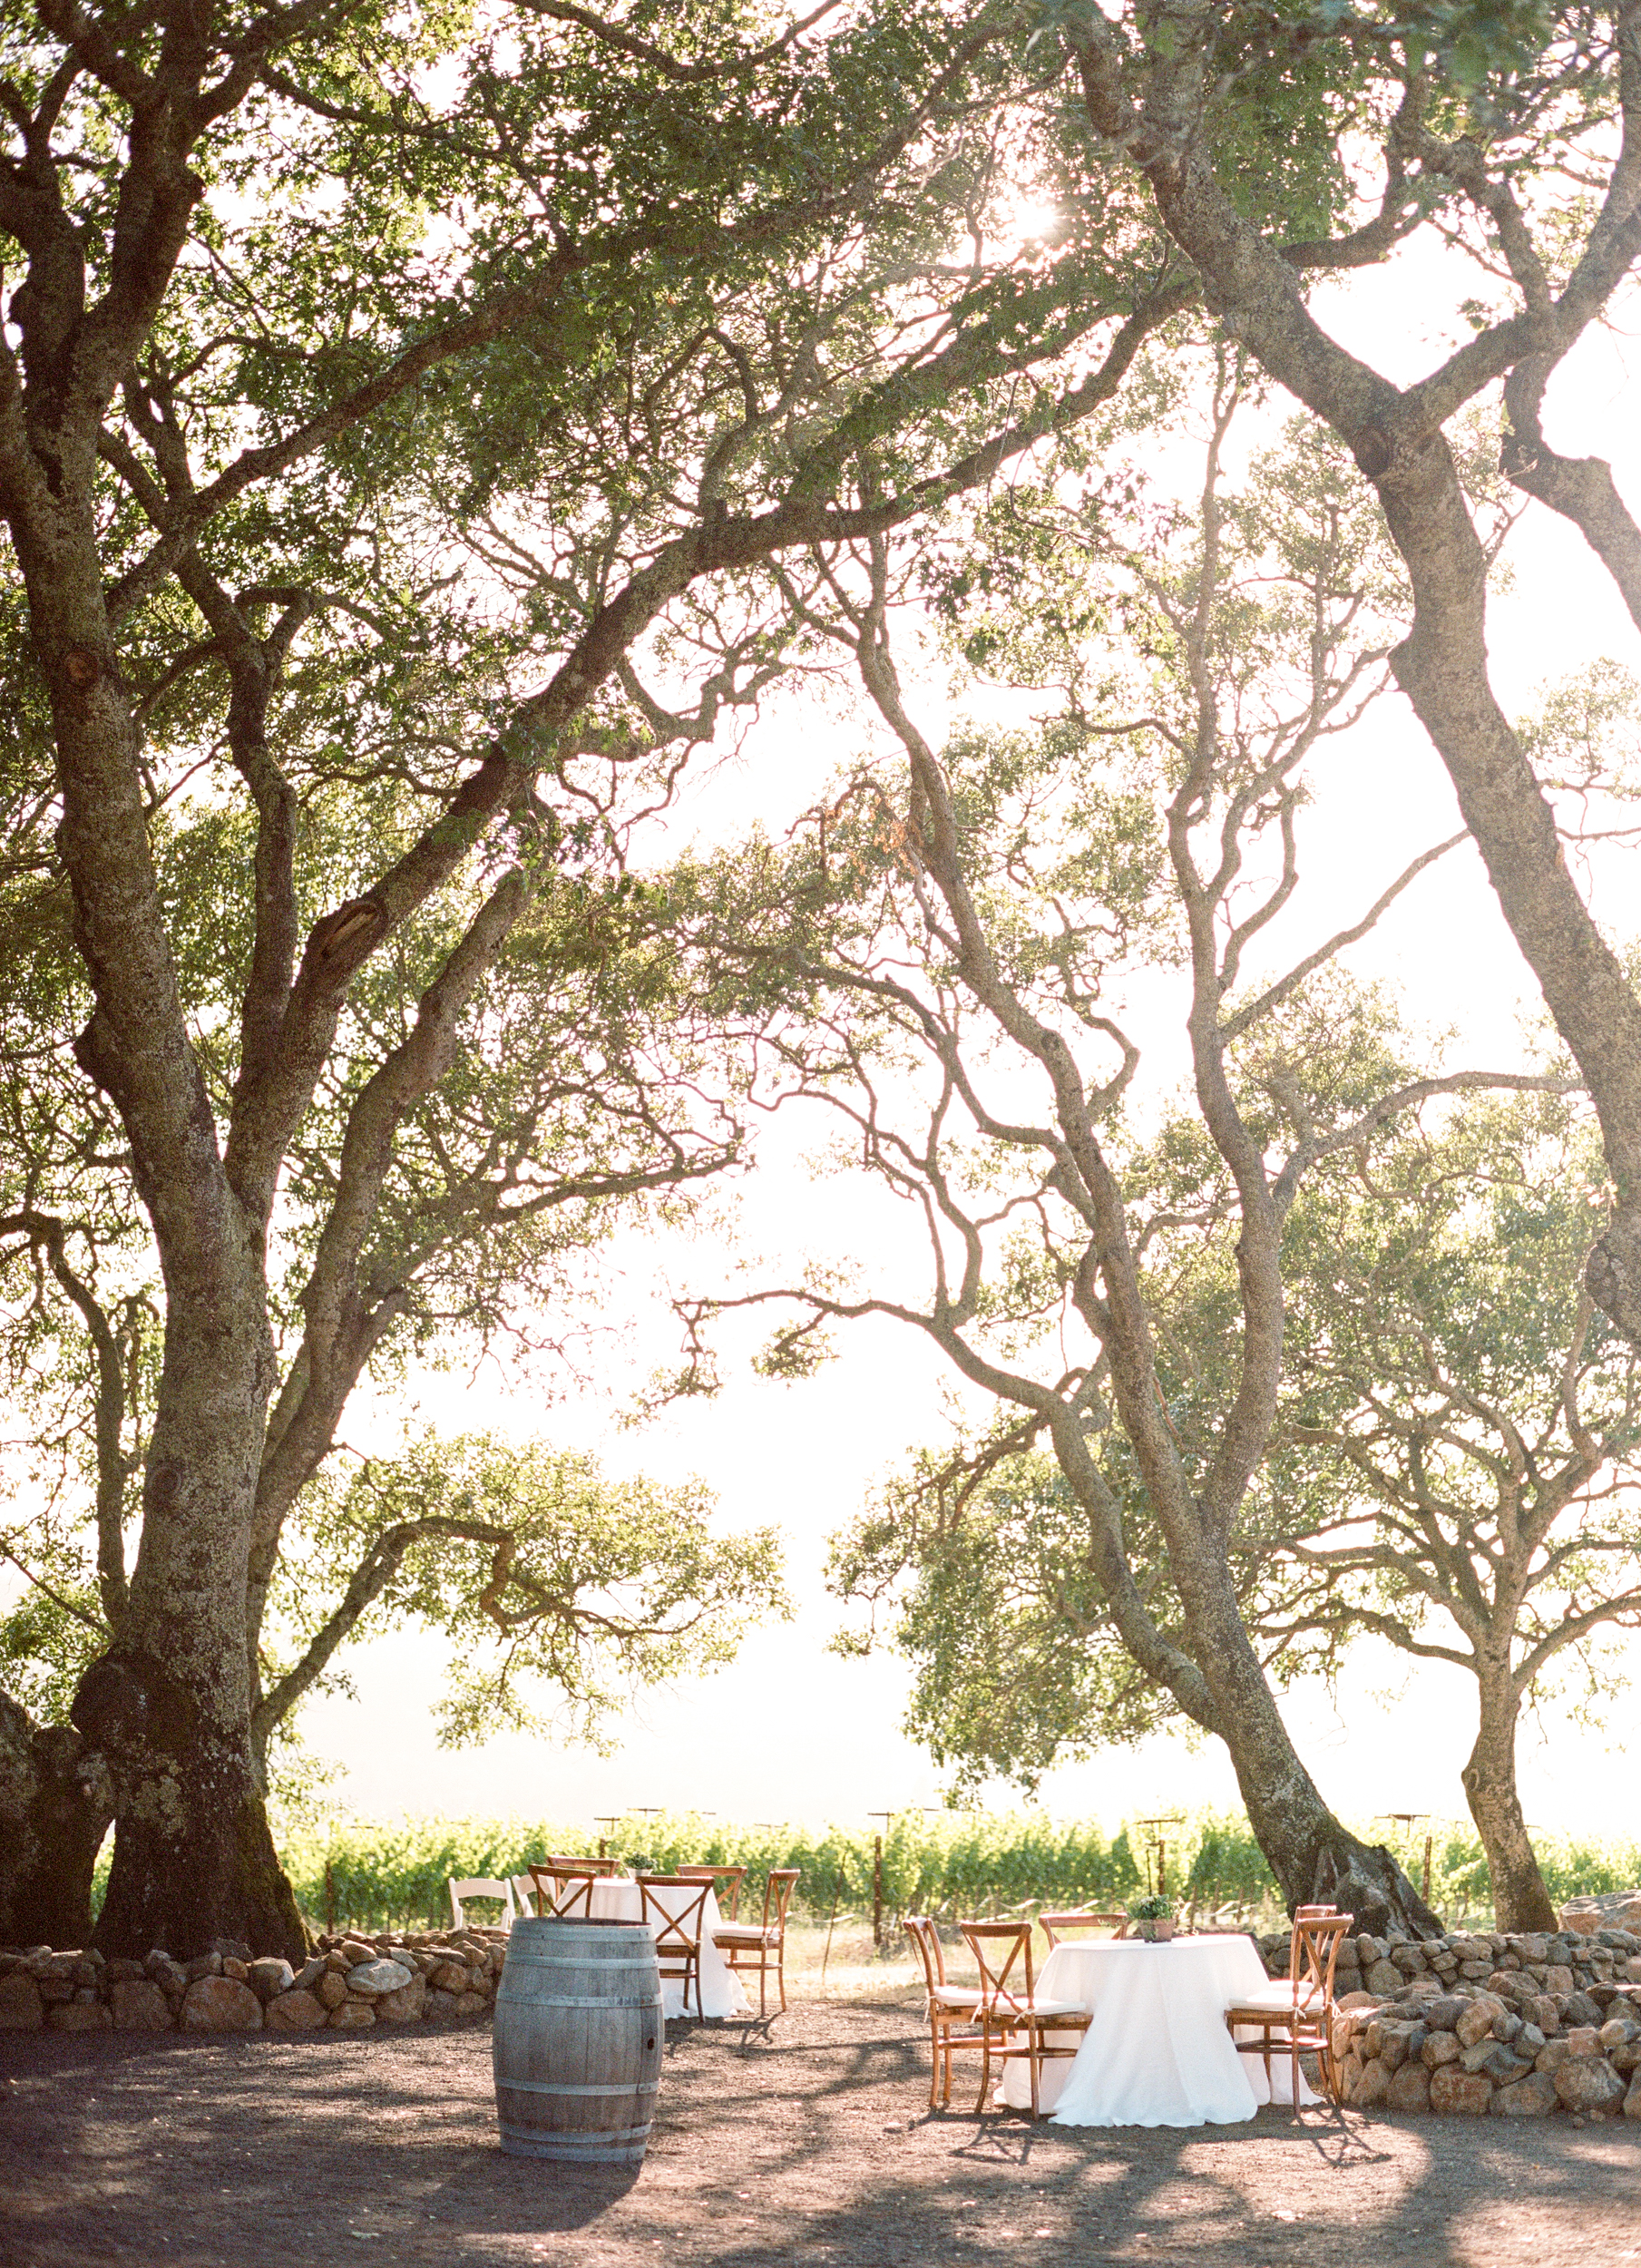 Tables with flowing white tablecloths are set up beneath towering oaks next to a vineyard for the reception; photo by Sylvie Gil